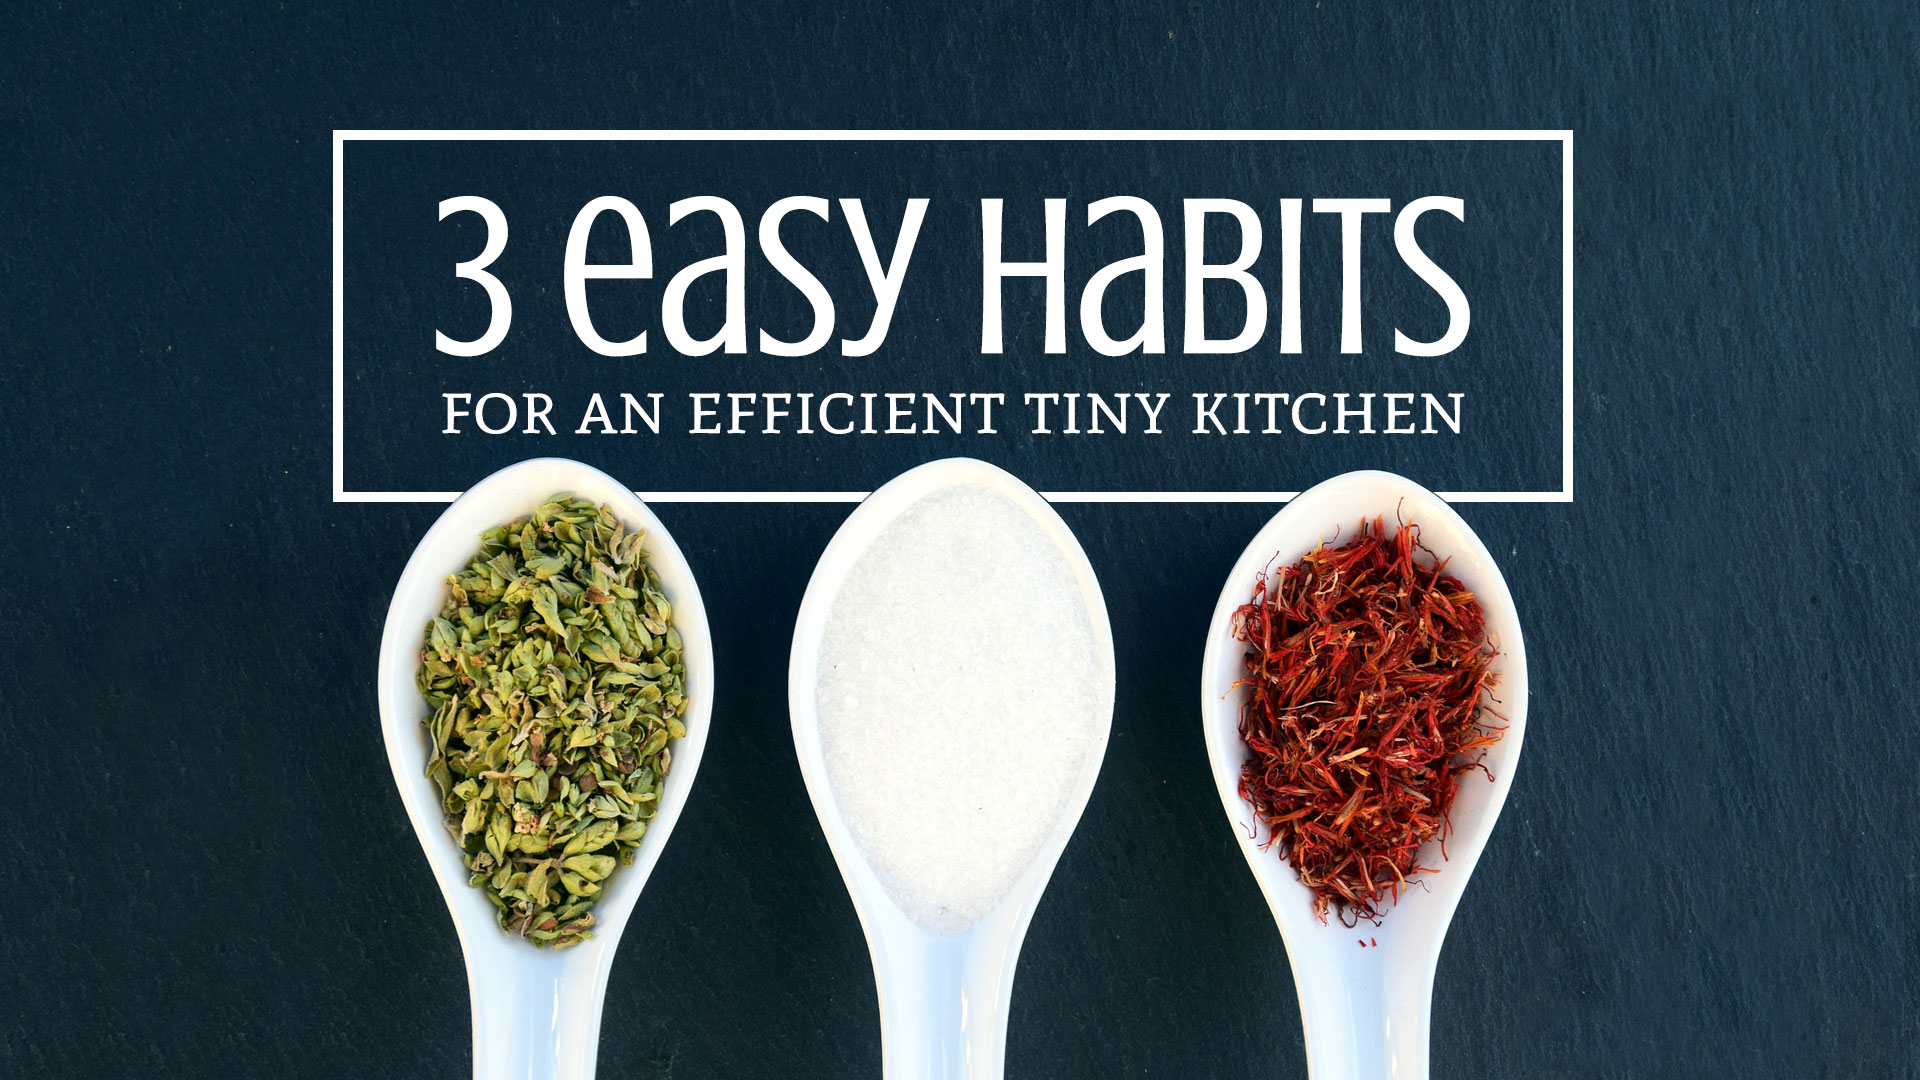 3 Easy Habits for an Efficient Tiny Kitchen: Strategize, Minimize, Sanitize! Learn how to develop these habits to make a more efficient tiny kitchen. | Tiny Kitchen Cuisine | http://tiny.kitchen